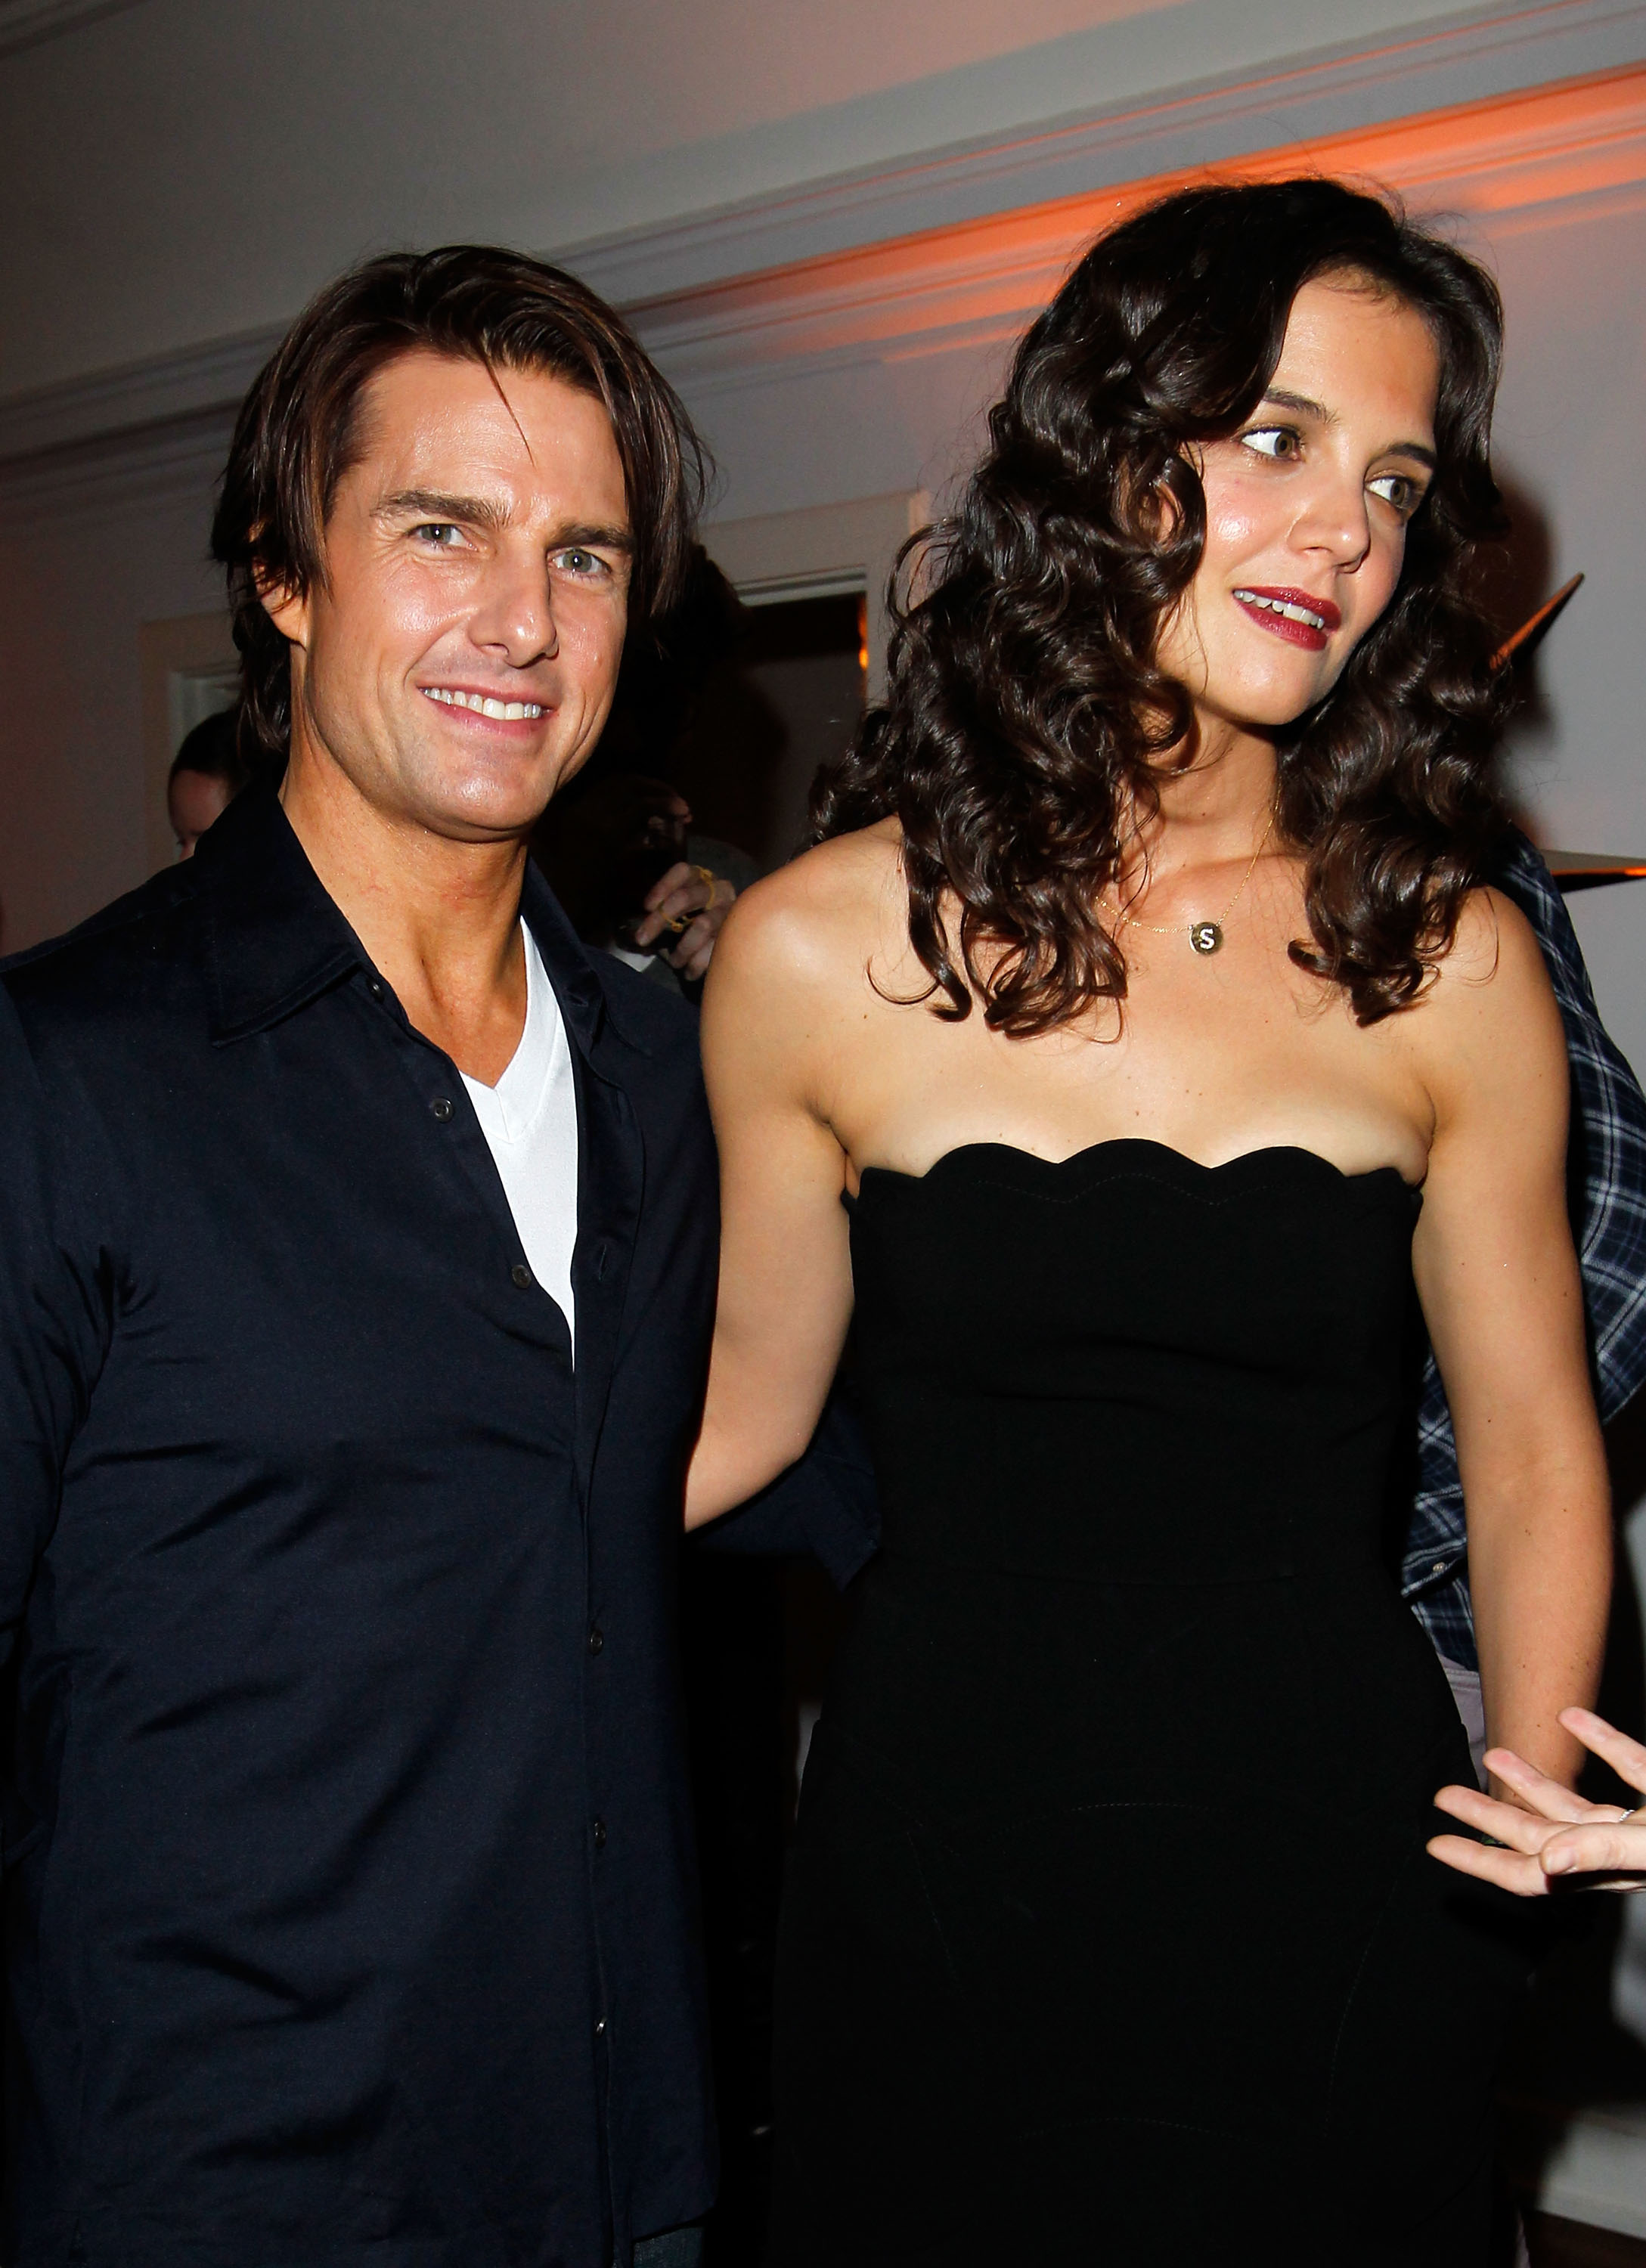 Actor Tom Cruise and Actress Katie Holmes at Chateau Marmont on Jan.14, 2011 in Los Angeles, California.